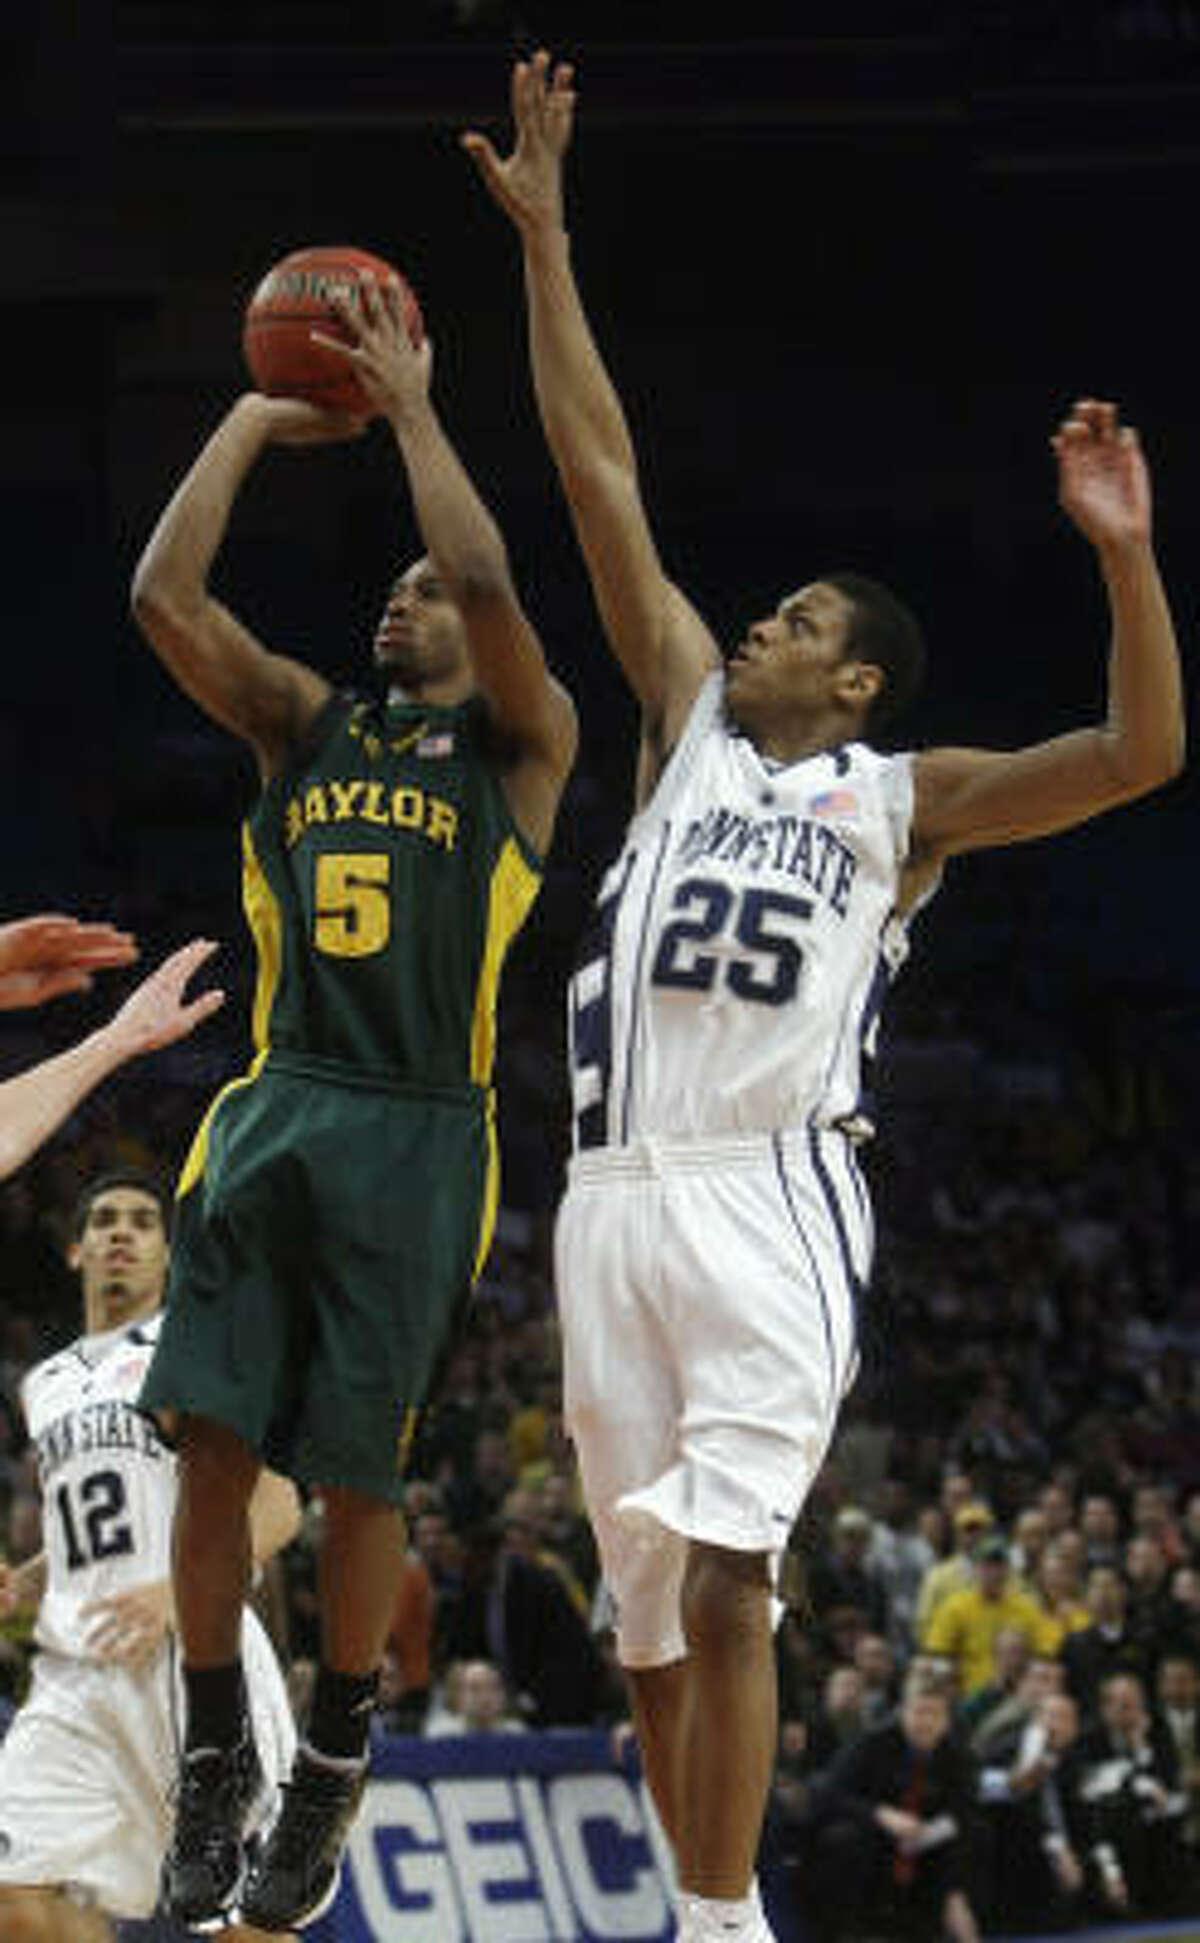 Baylor's Henry Dugat (5) drives past Penn State's Jeff Brooks (25) for a shot during the first half.